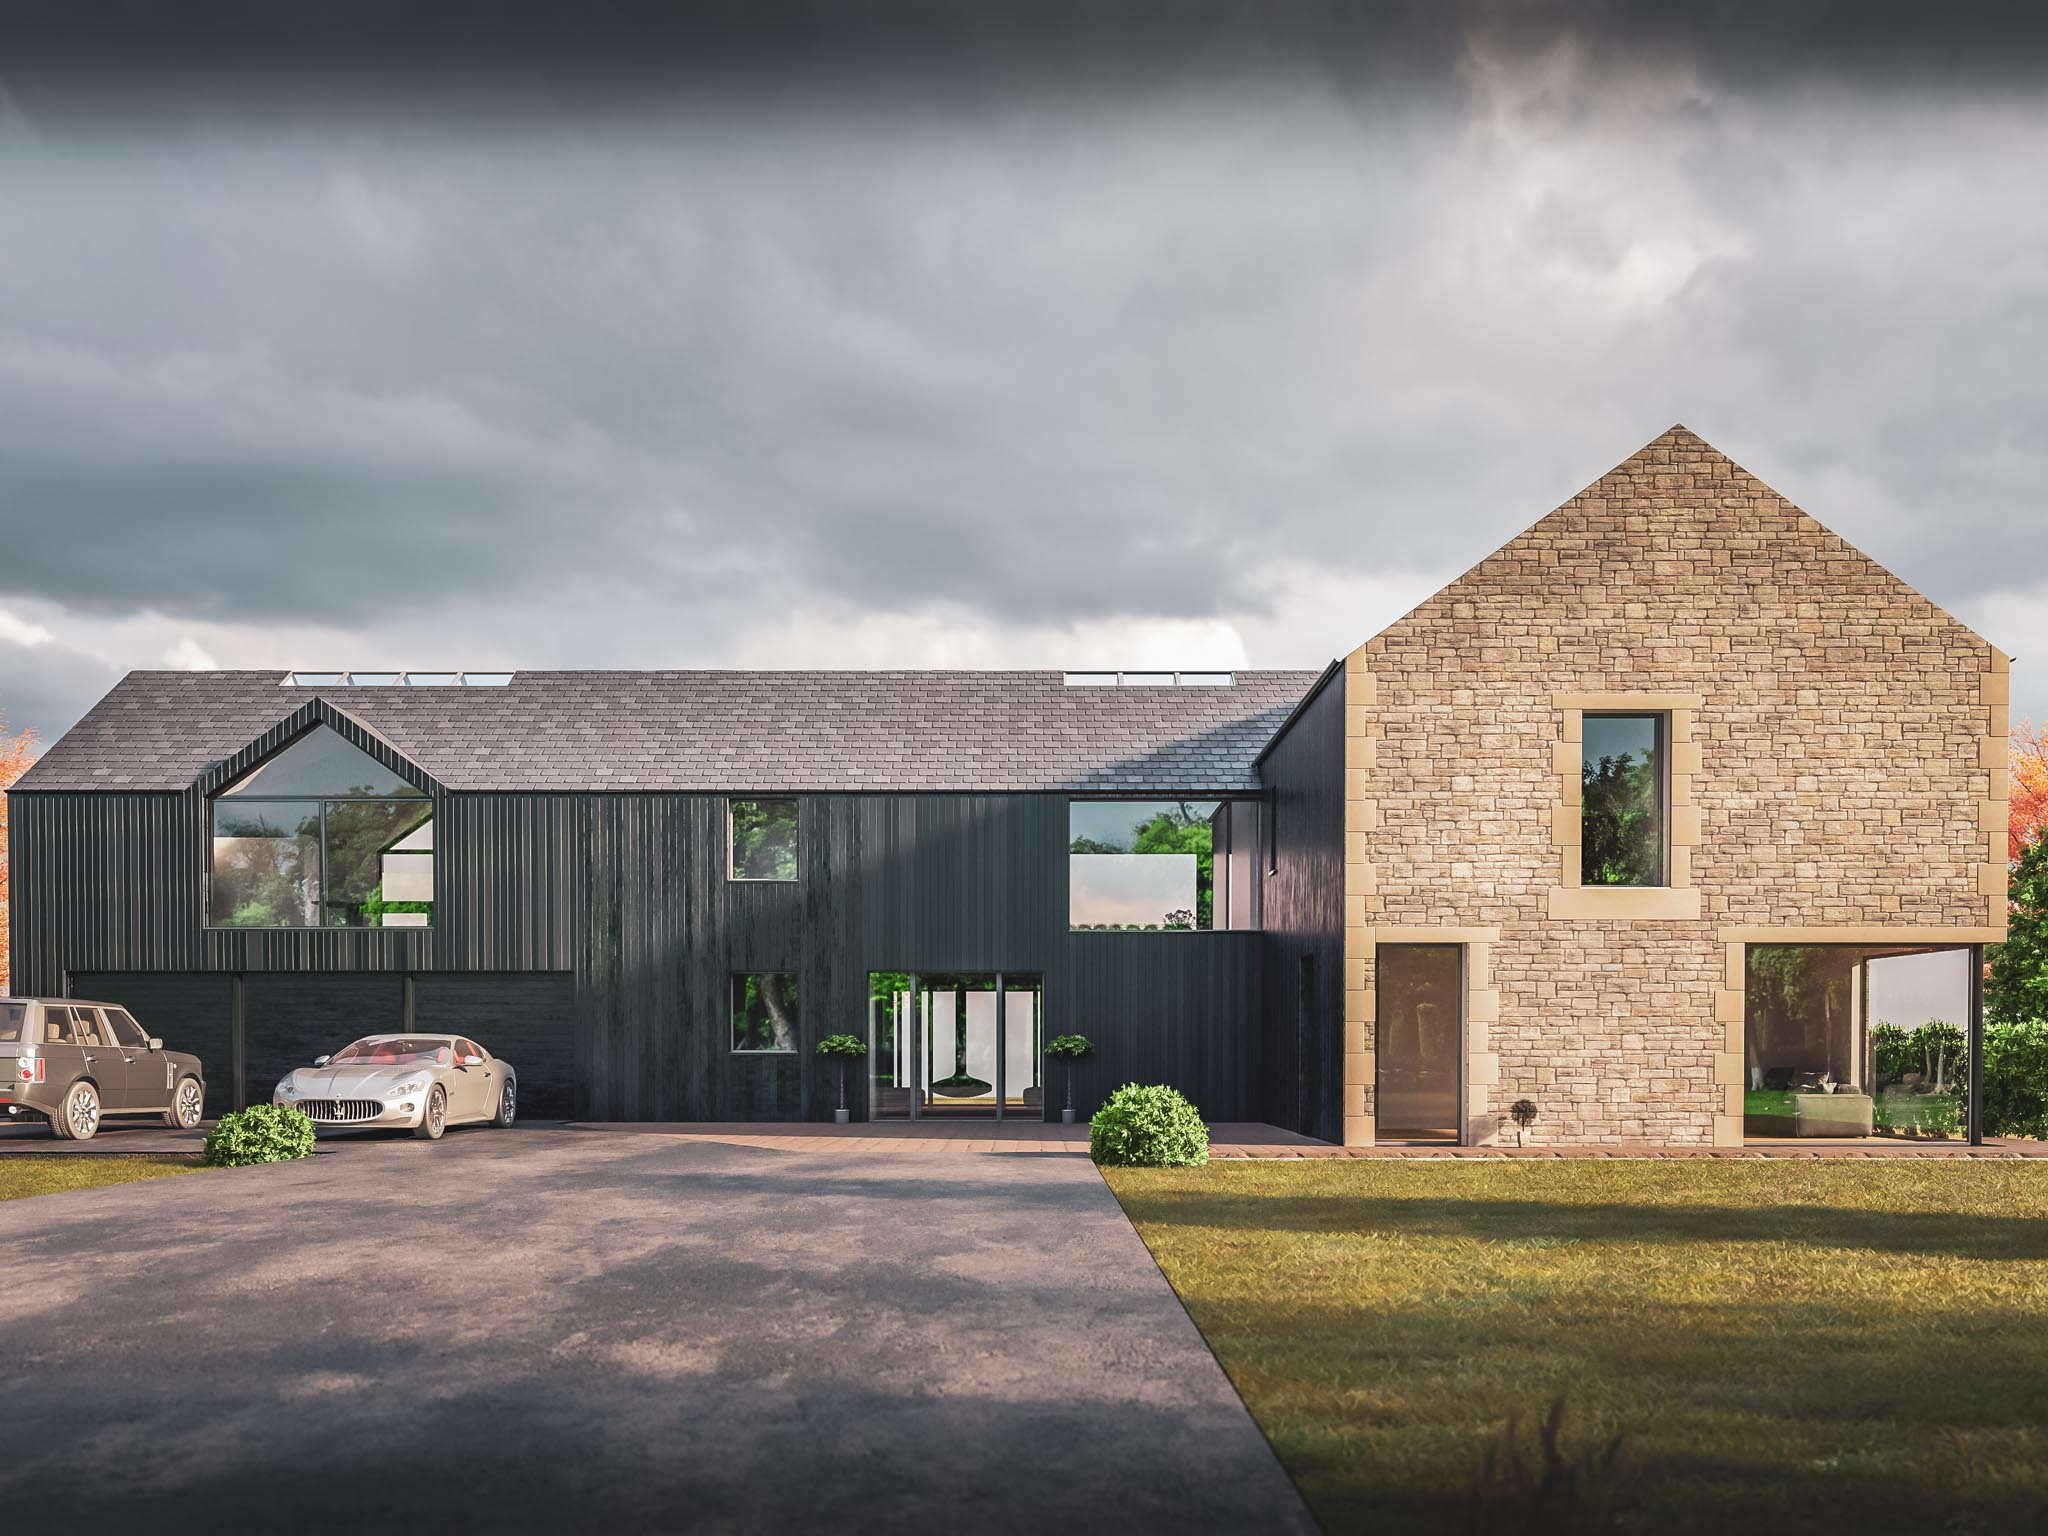 Planning submitted for new build house in Dollar